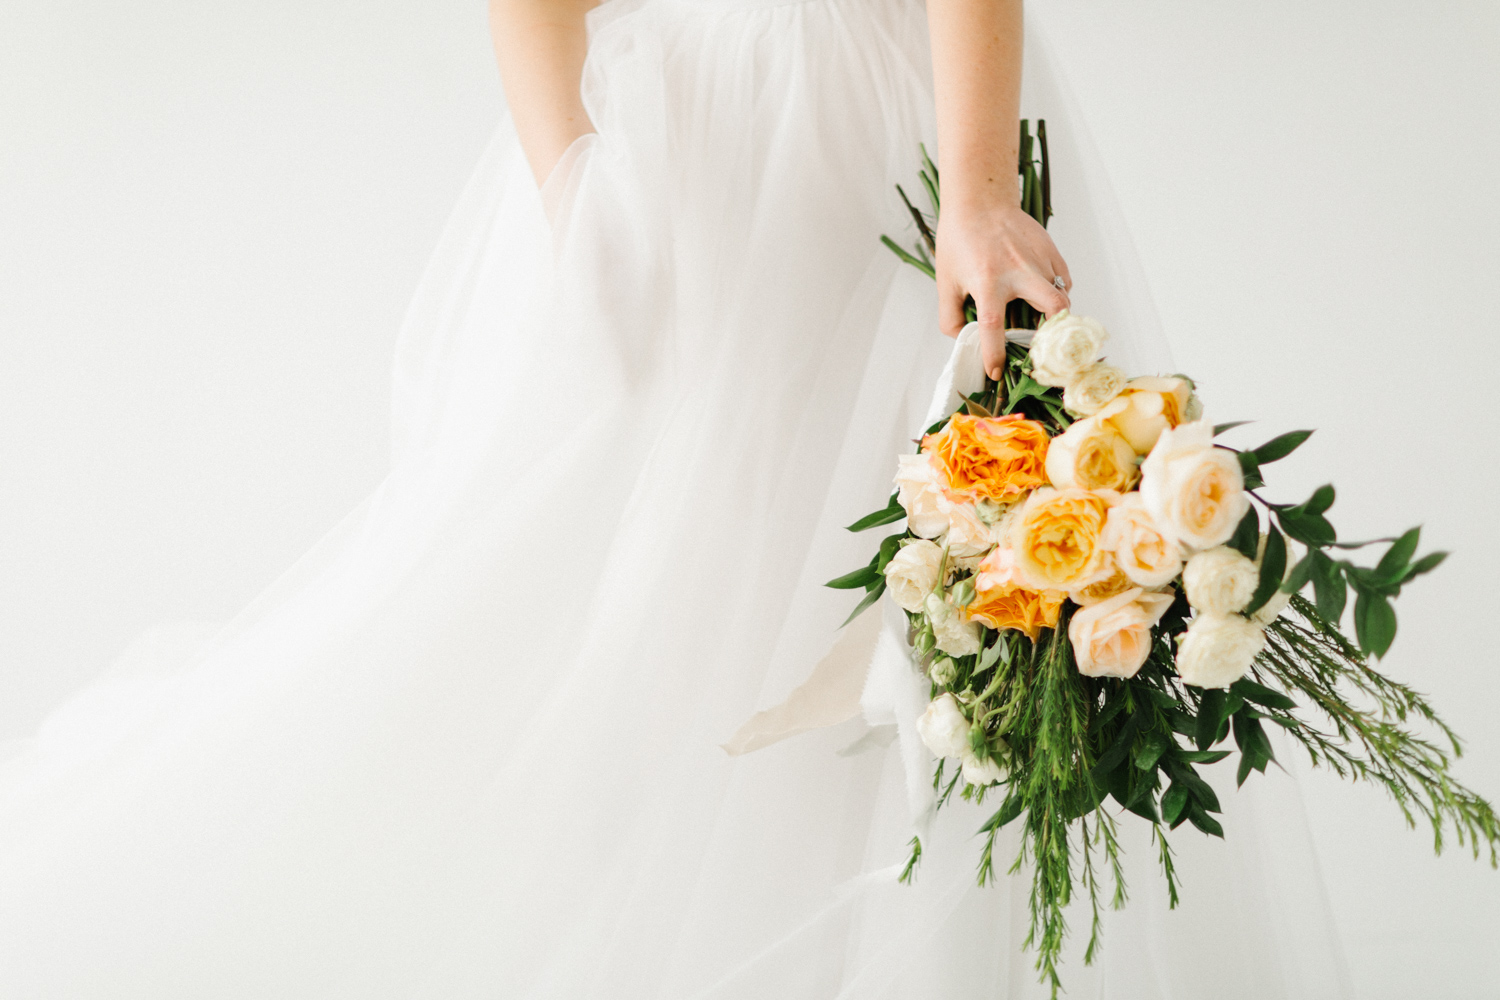 Seattle Fine Art Wedding Photographer | Seattle Downtown White Studio Bridal Session | Stunning Wedding Bouquet | Seattle Bride | Seattle Wedding | Photography Studio Space | Emma Rose Company Wedding Photography-9.jpg